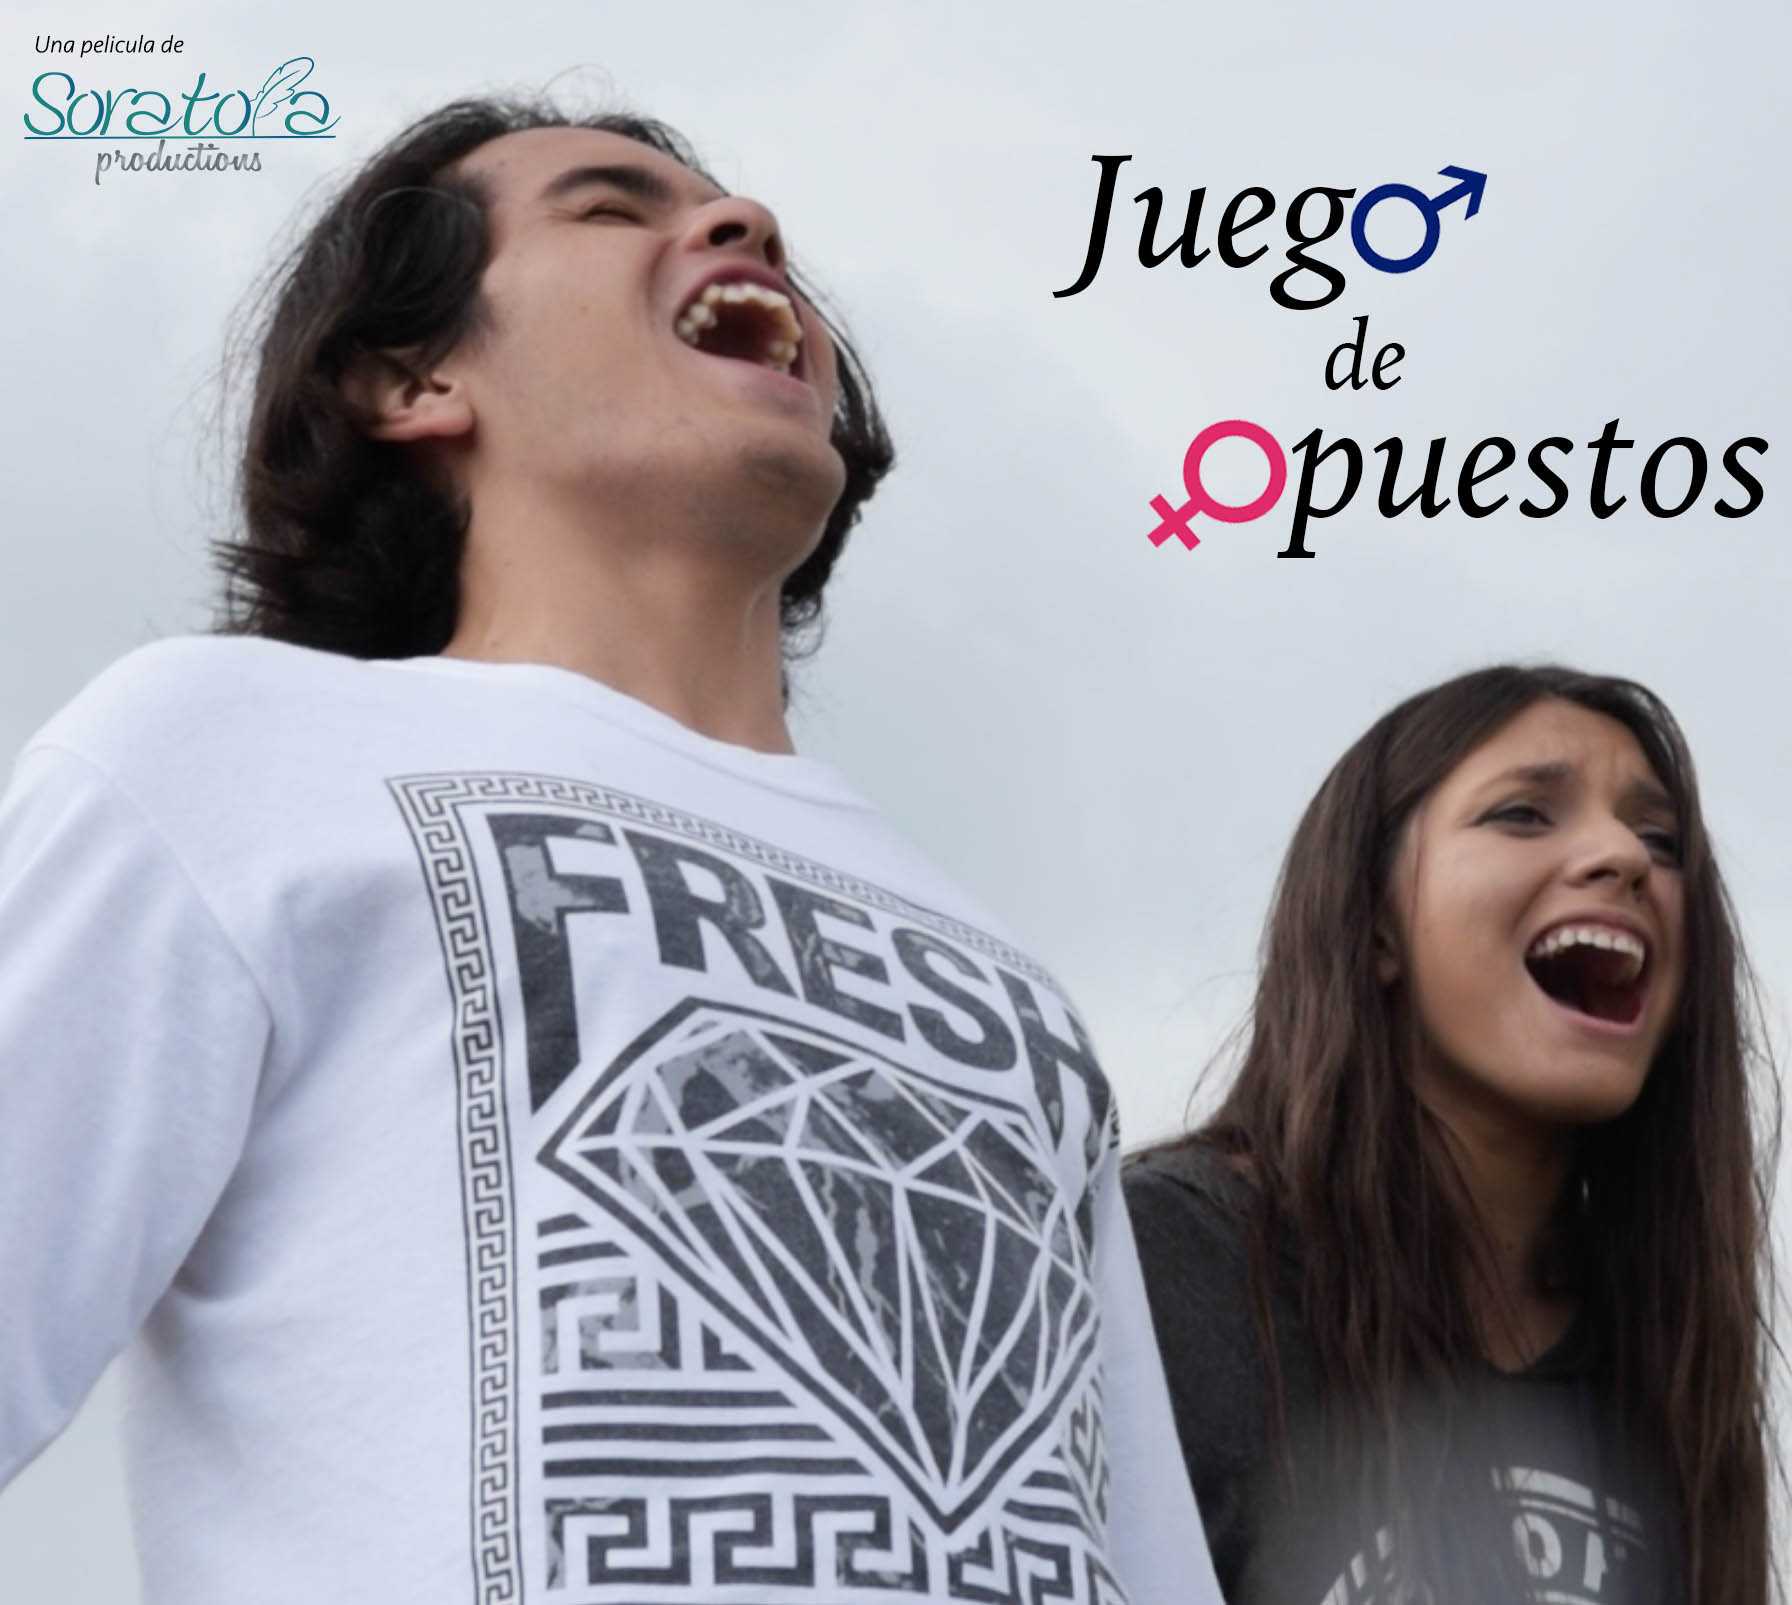 JUEGO DE OPUESTOS (2015)Opposites Game - (Short Film/Cortometraje)Credit: Writer/Director/ ProducerGenre: Romance/Drama.Logline:Julia has lost the love for life and she made the decision to kill herself, but Raul has the opposite goal, he wants to save her and make her fall in love with life again.Country: Mexico